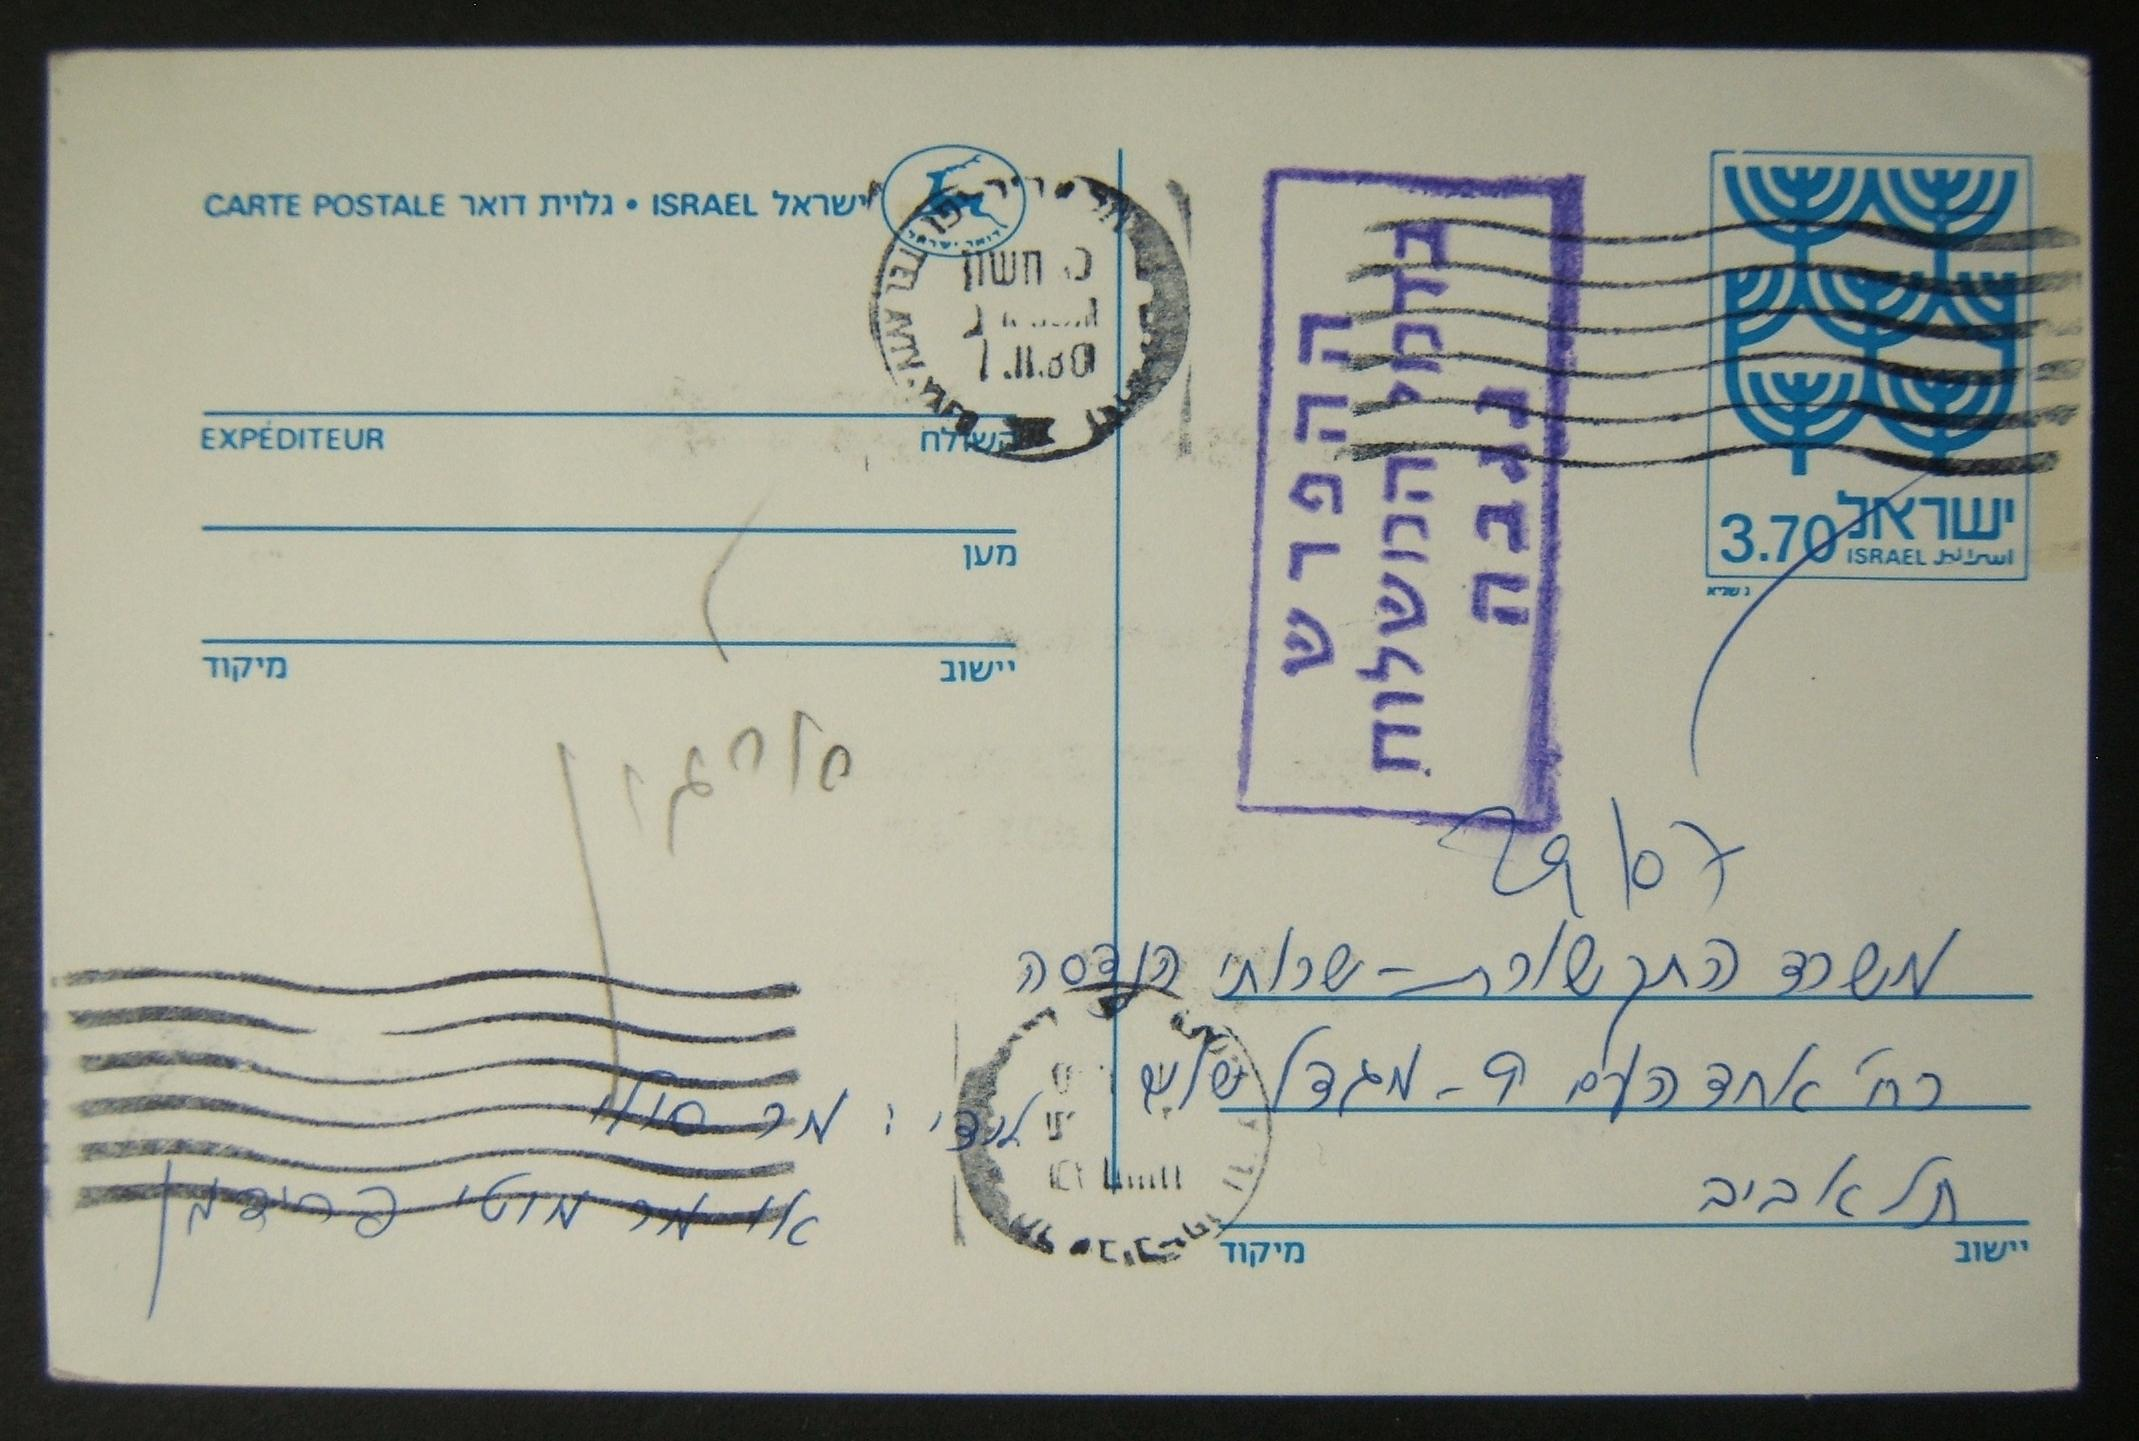 Nov 1980 Tel Aviv postcard pre-franked in Lira, underfranked in Shekel period -taxed & paid